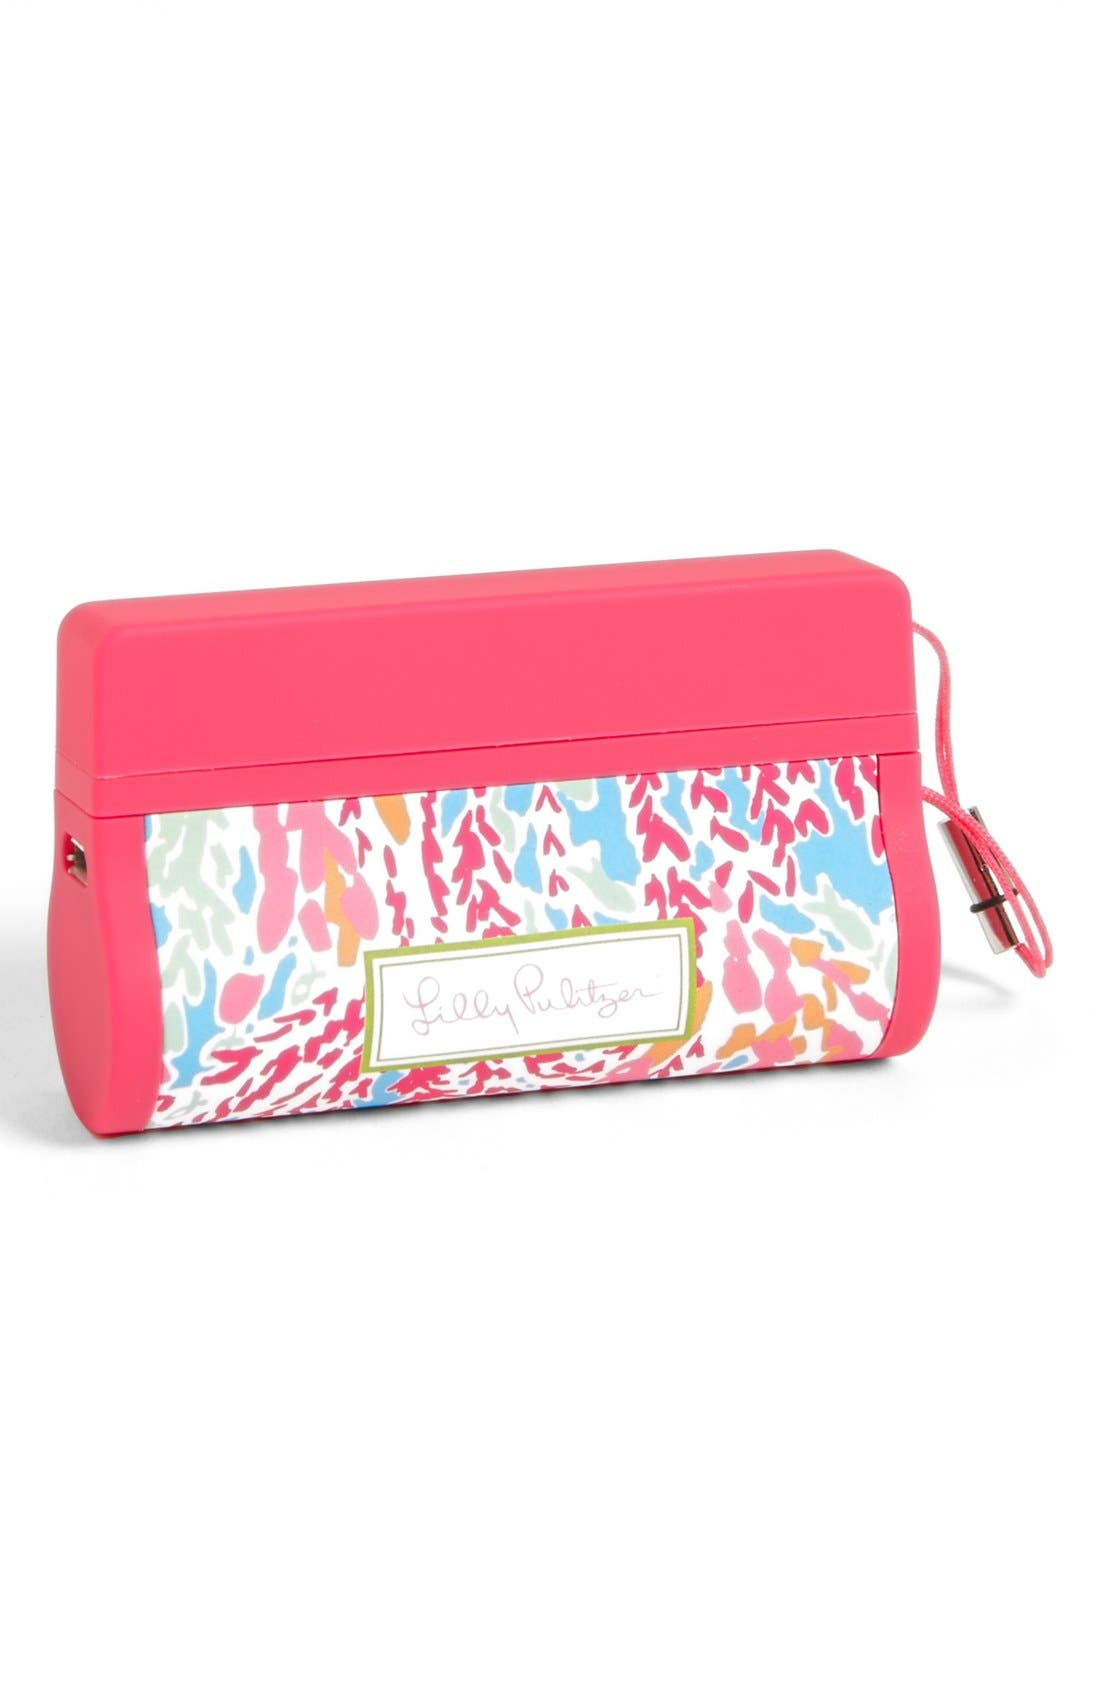 Alternate Image 1 Selected - Lilly Pulitzer® 'Let's Cha Cha' iPhone 5 Mobile Charger